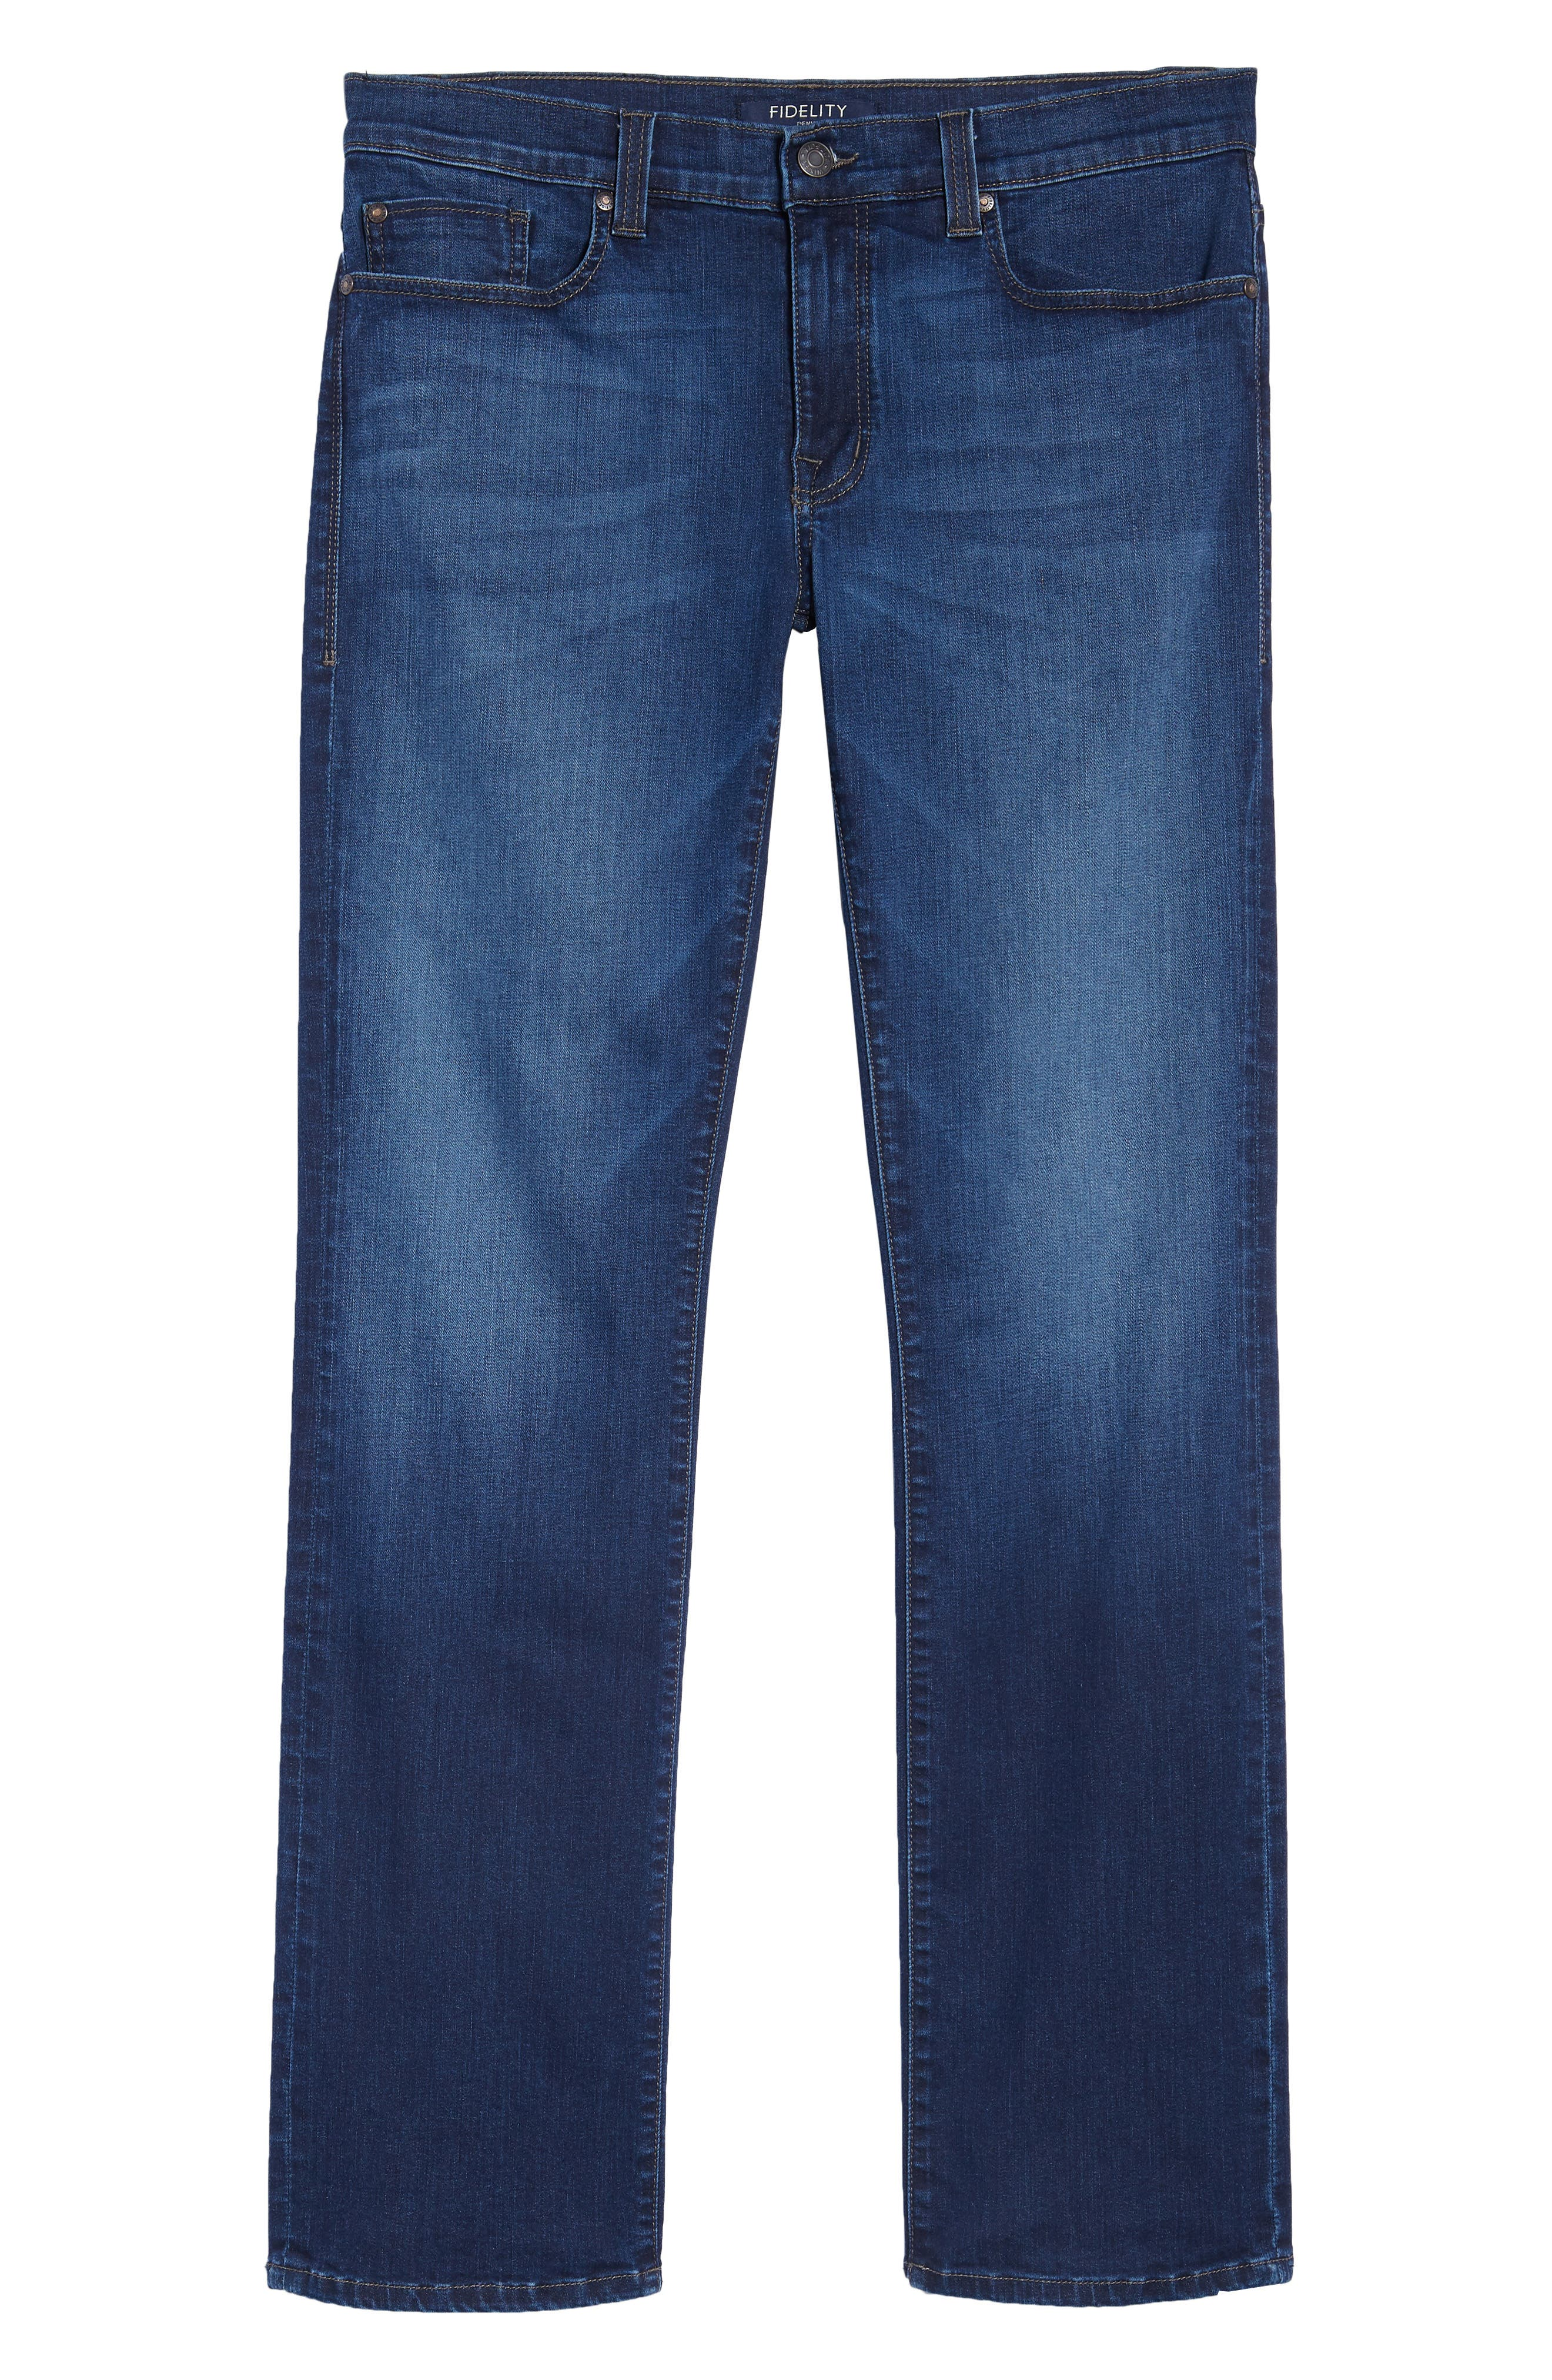 50-11 Relaxed Fit Jeans,                             Alternate thumbnail 6, color,                             CORNELL BLUE